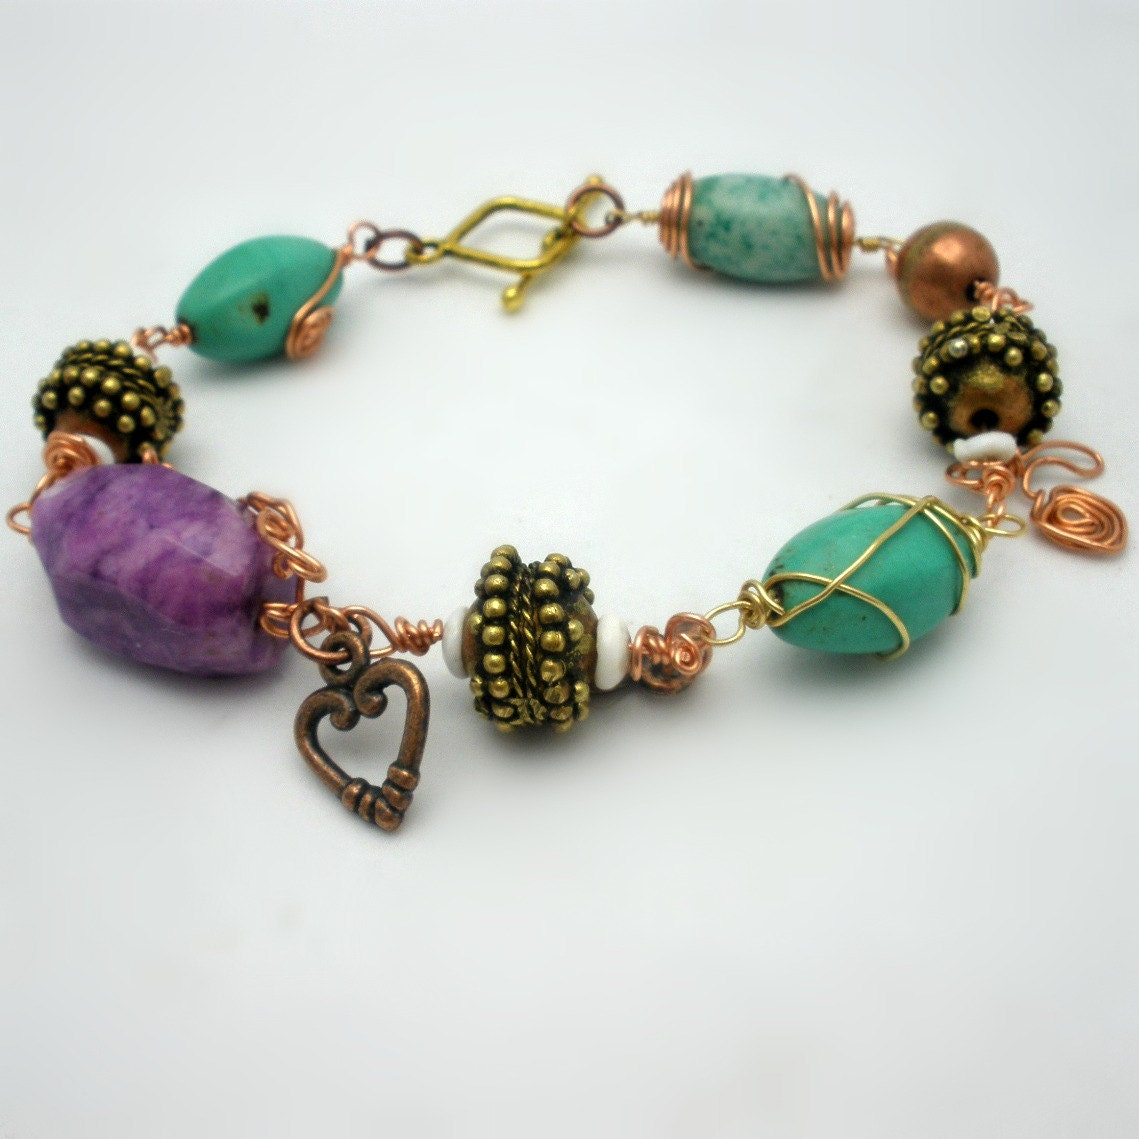 Handcrafted Bracelet Boho Tribal Style wire wrapped beads